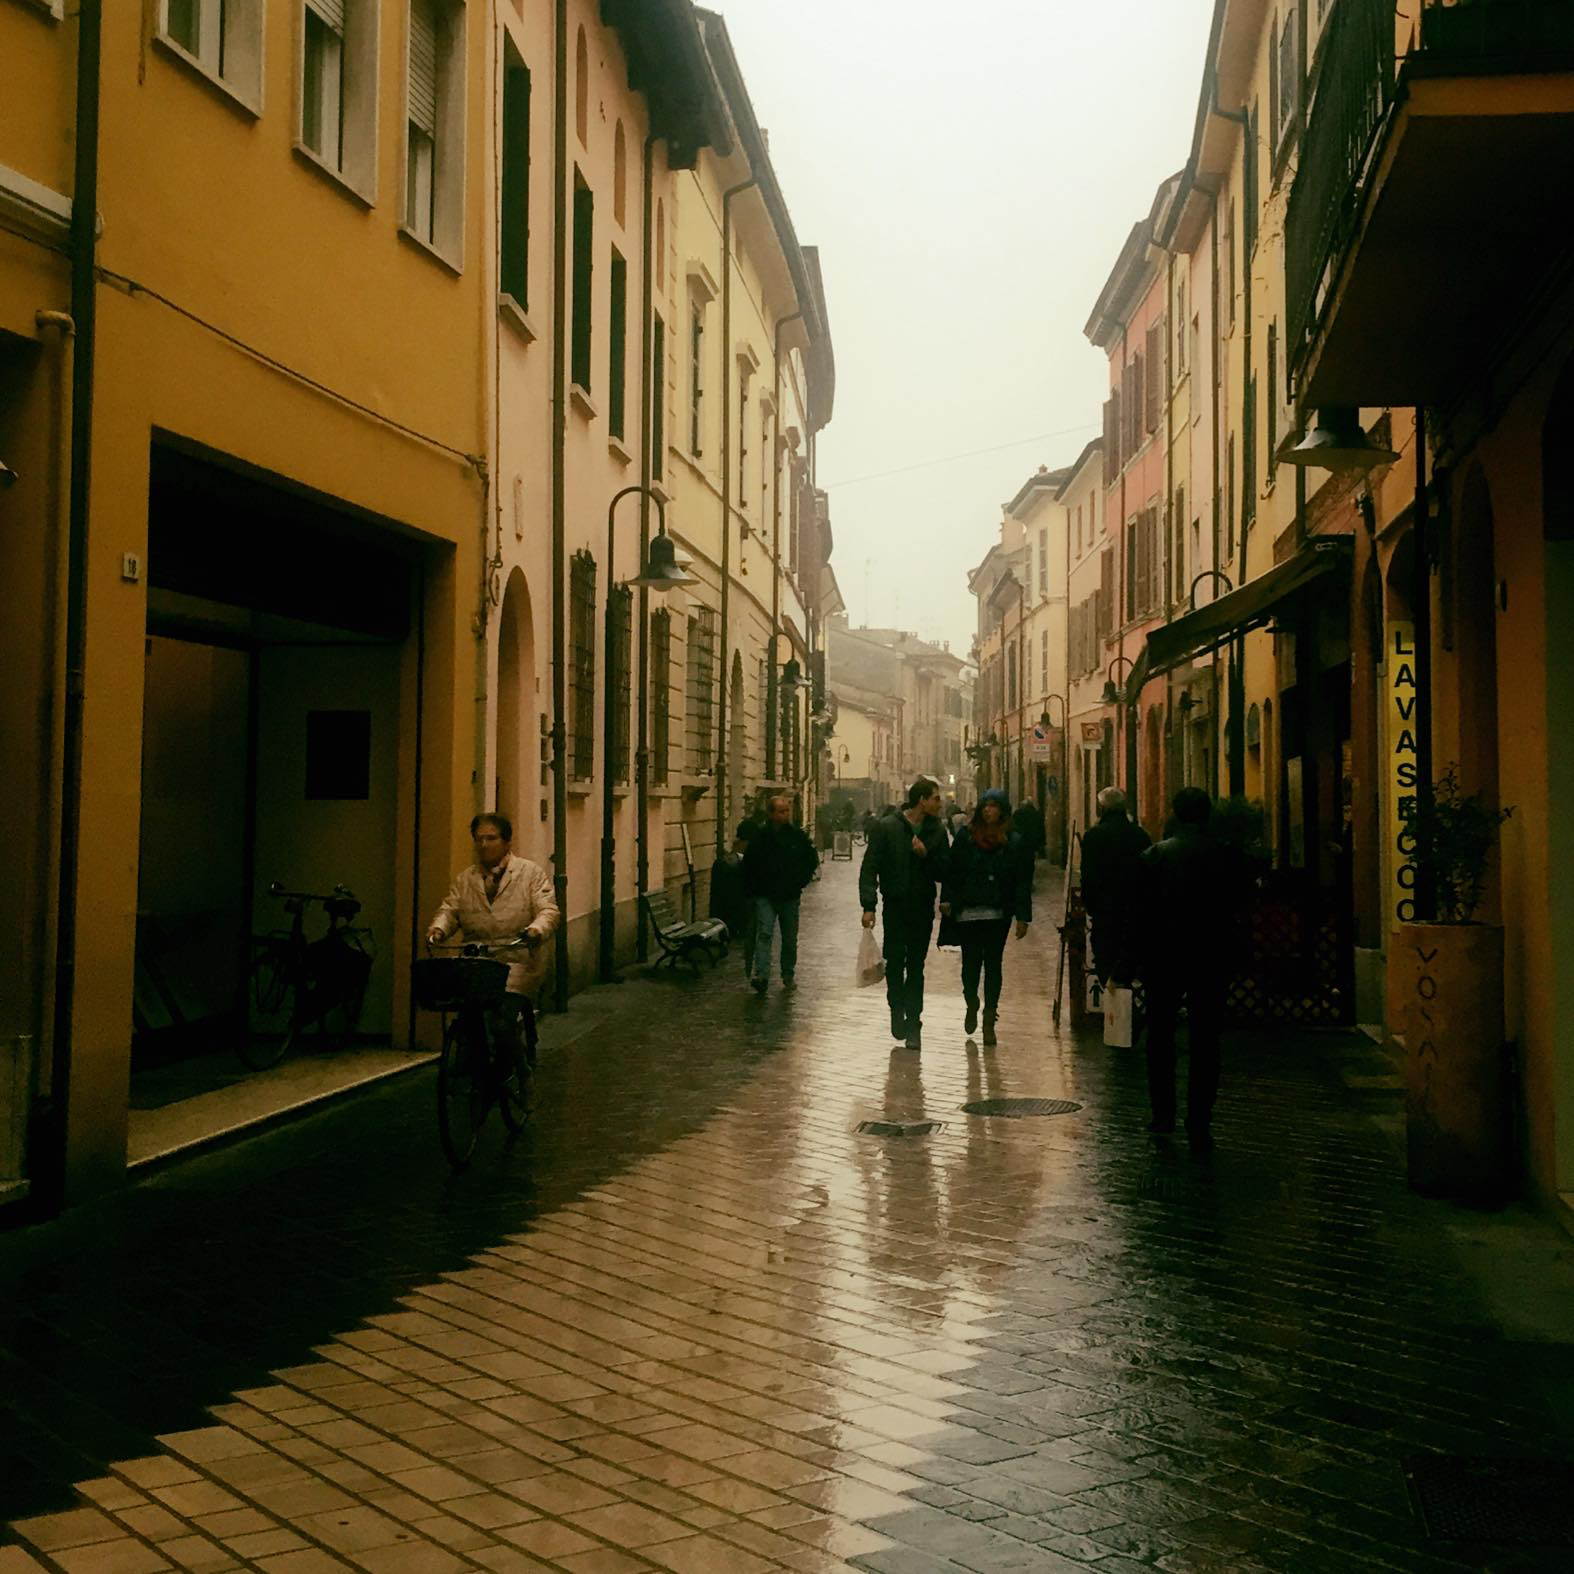 The Street I Walked Down When I First Arrived in Ravenna